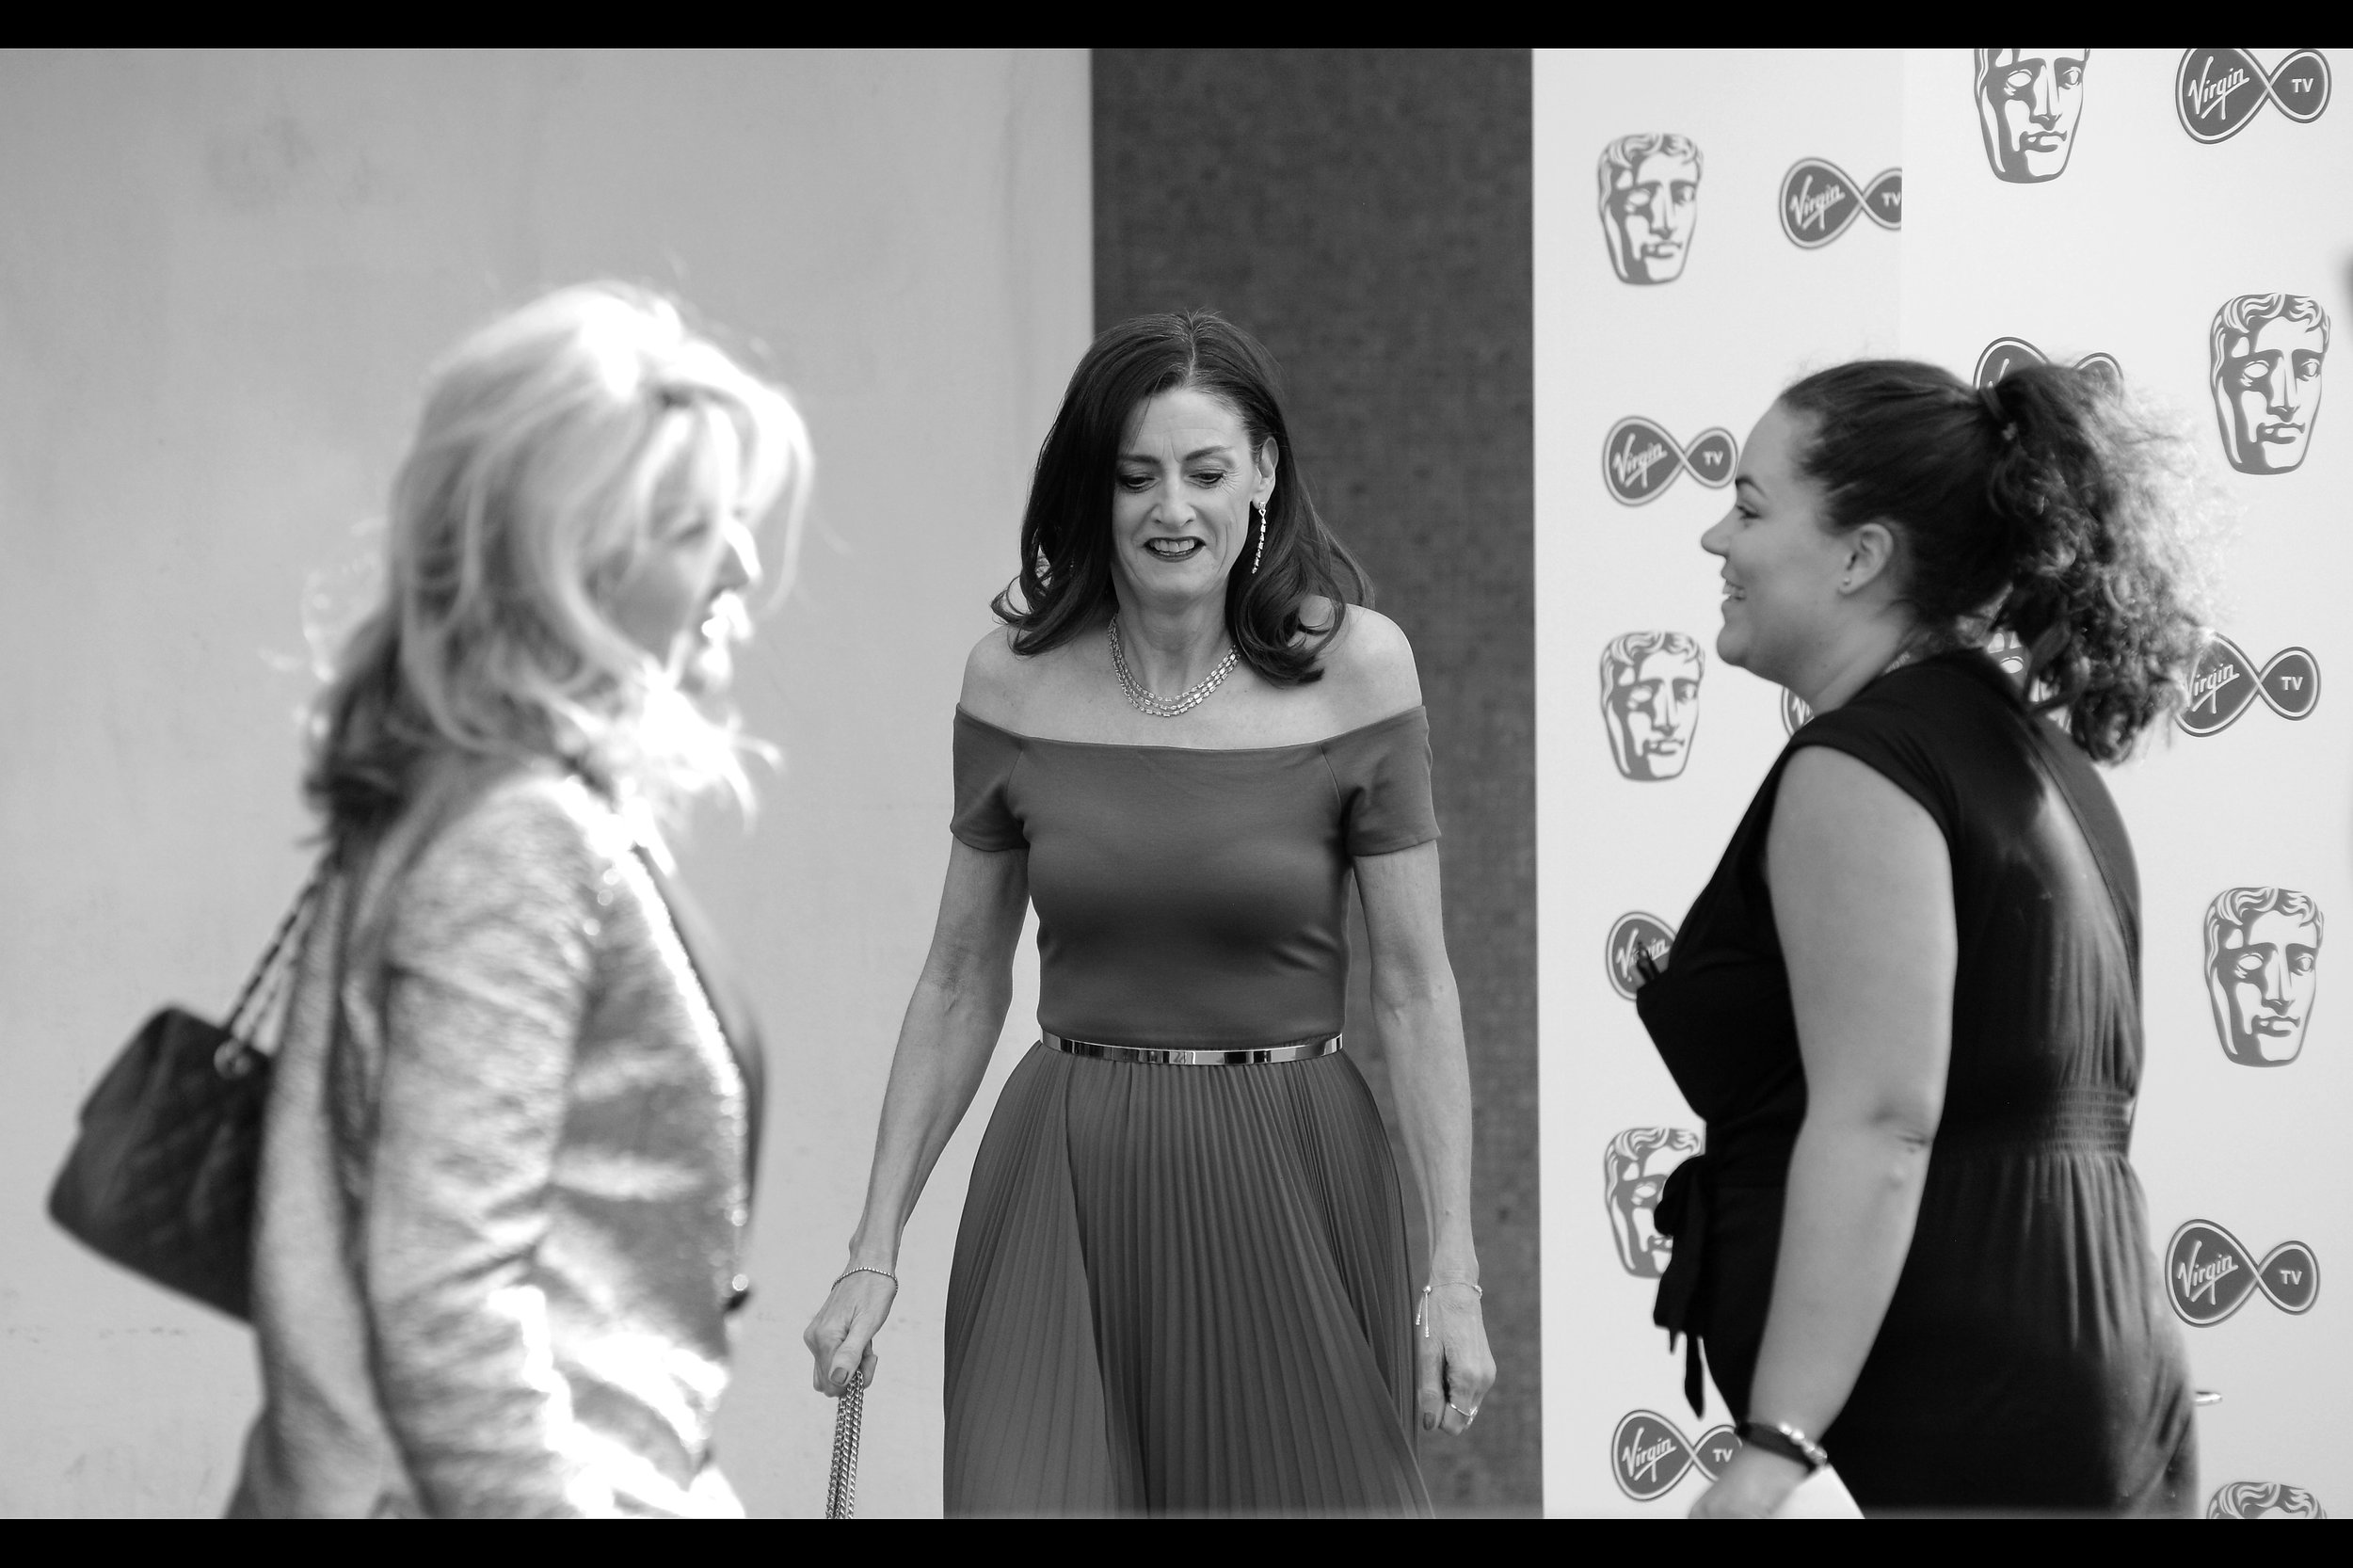 I feel like I should know who this is, since I'm about 80% certain I photographed (and probably even identified) who this was when she attended    LAST year's TV Baftas   .